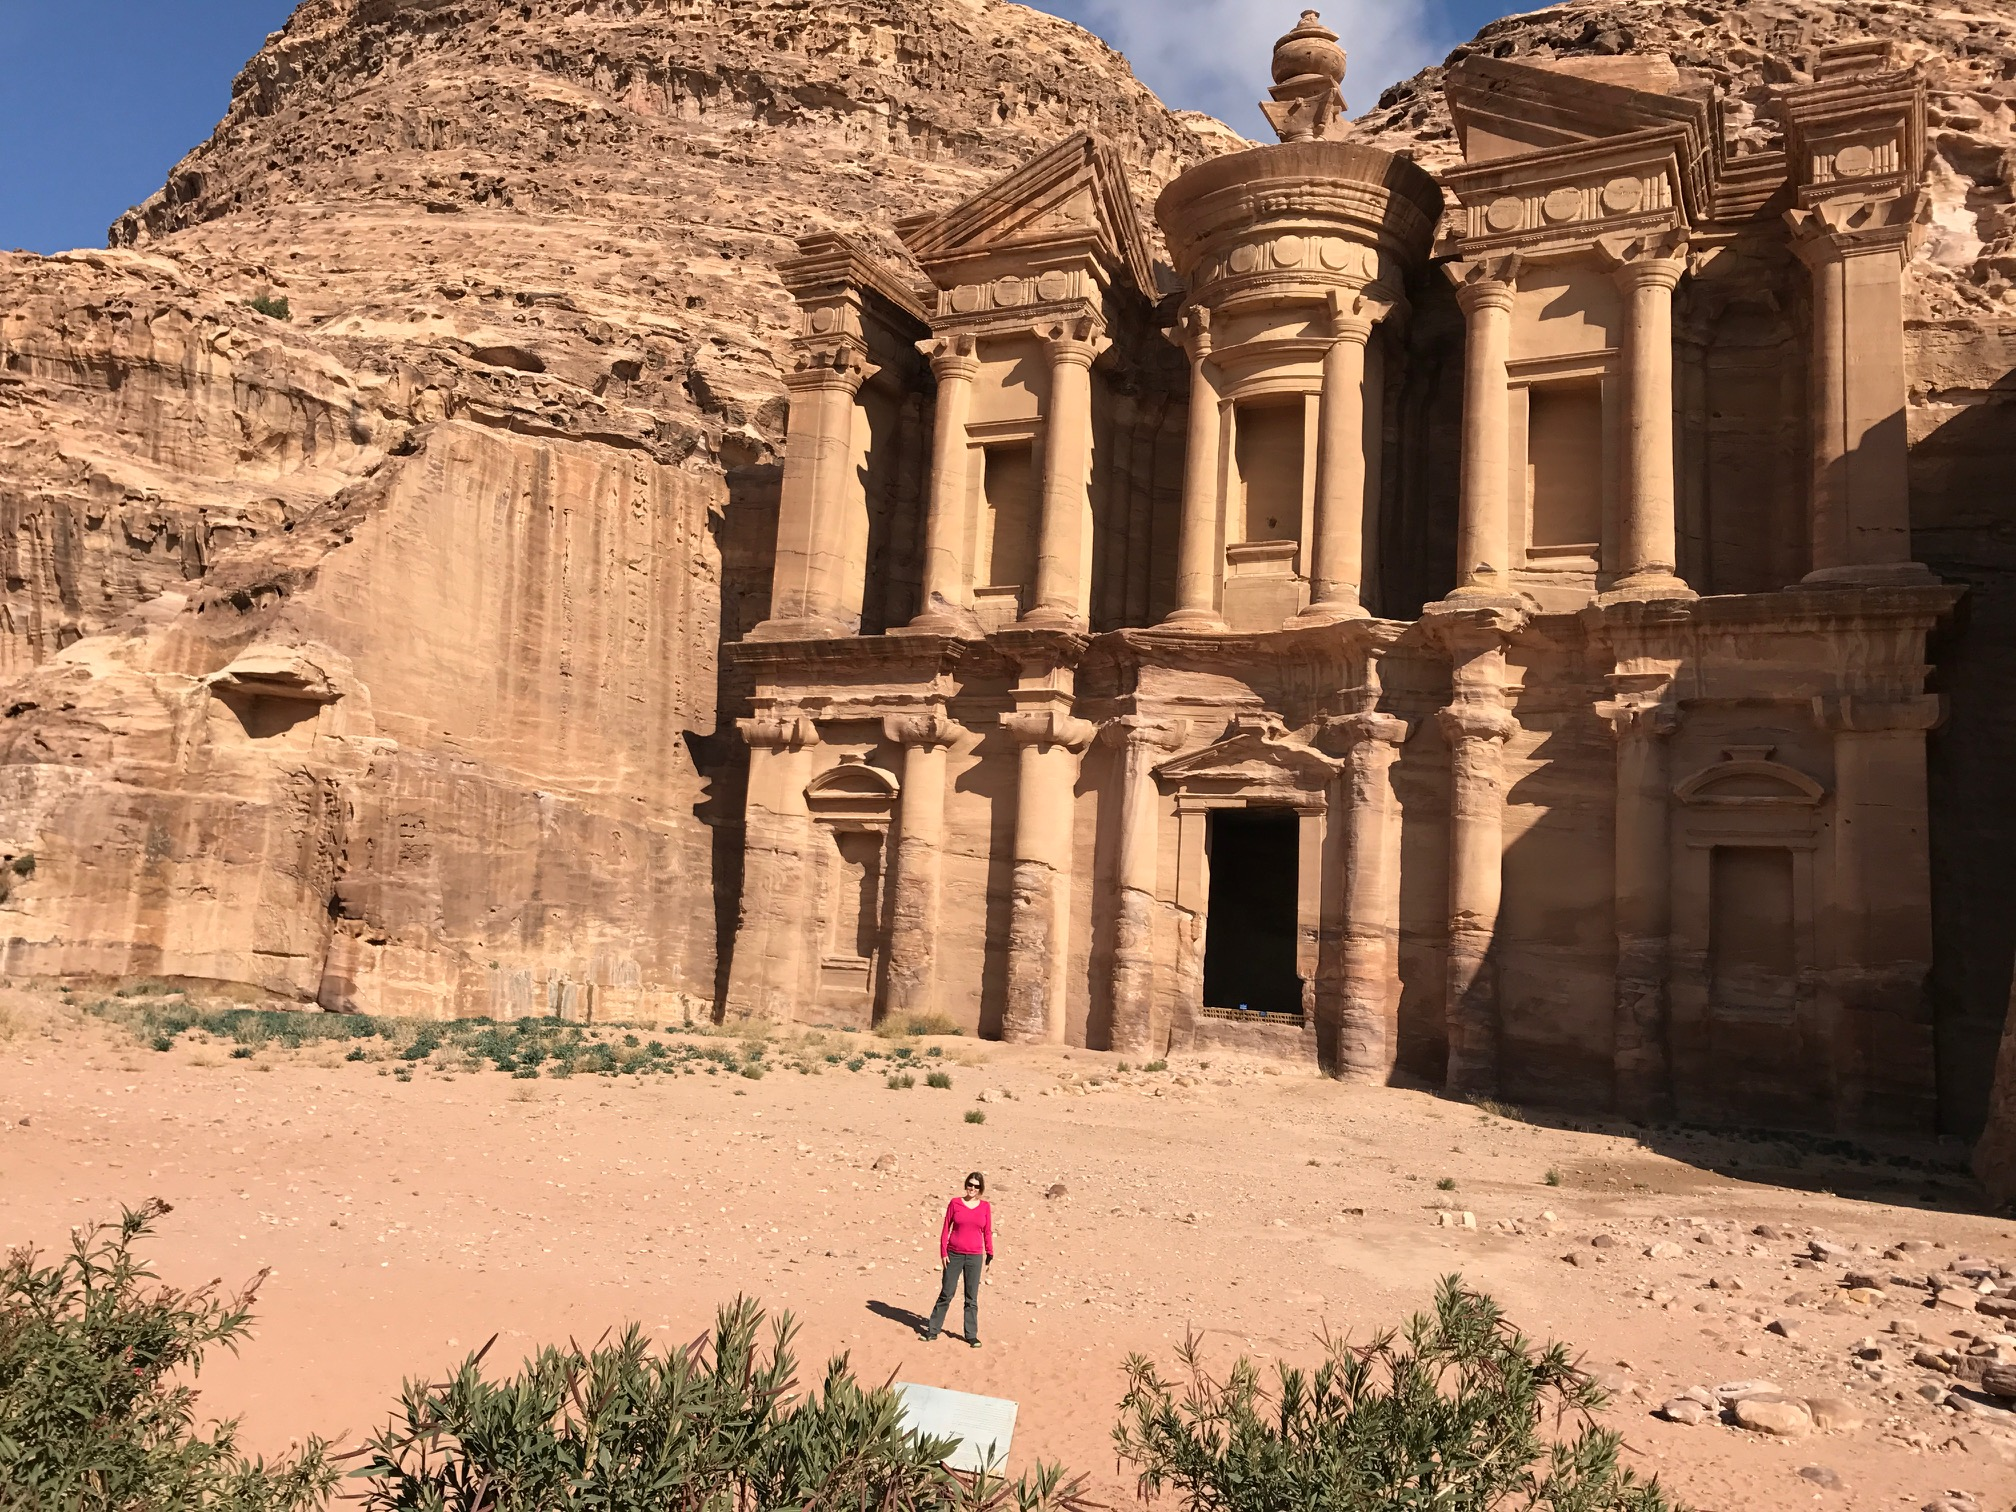 The monestary in Petra